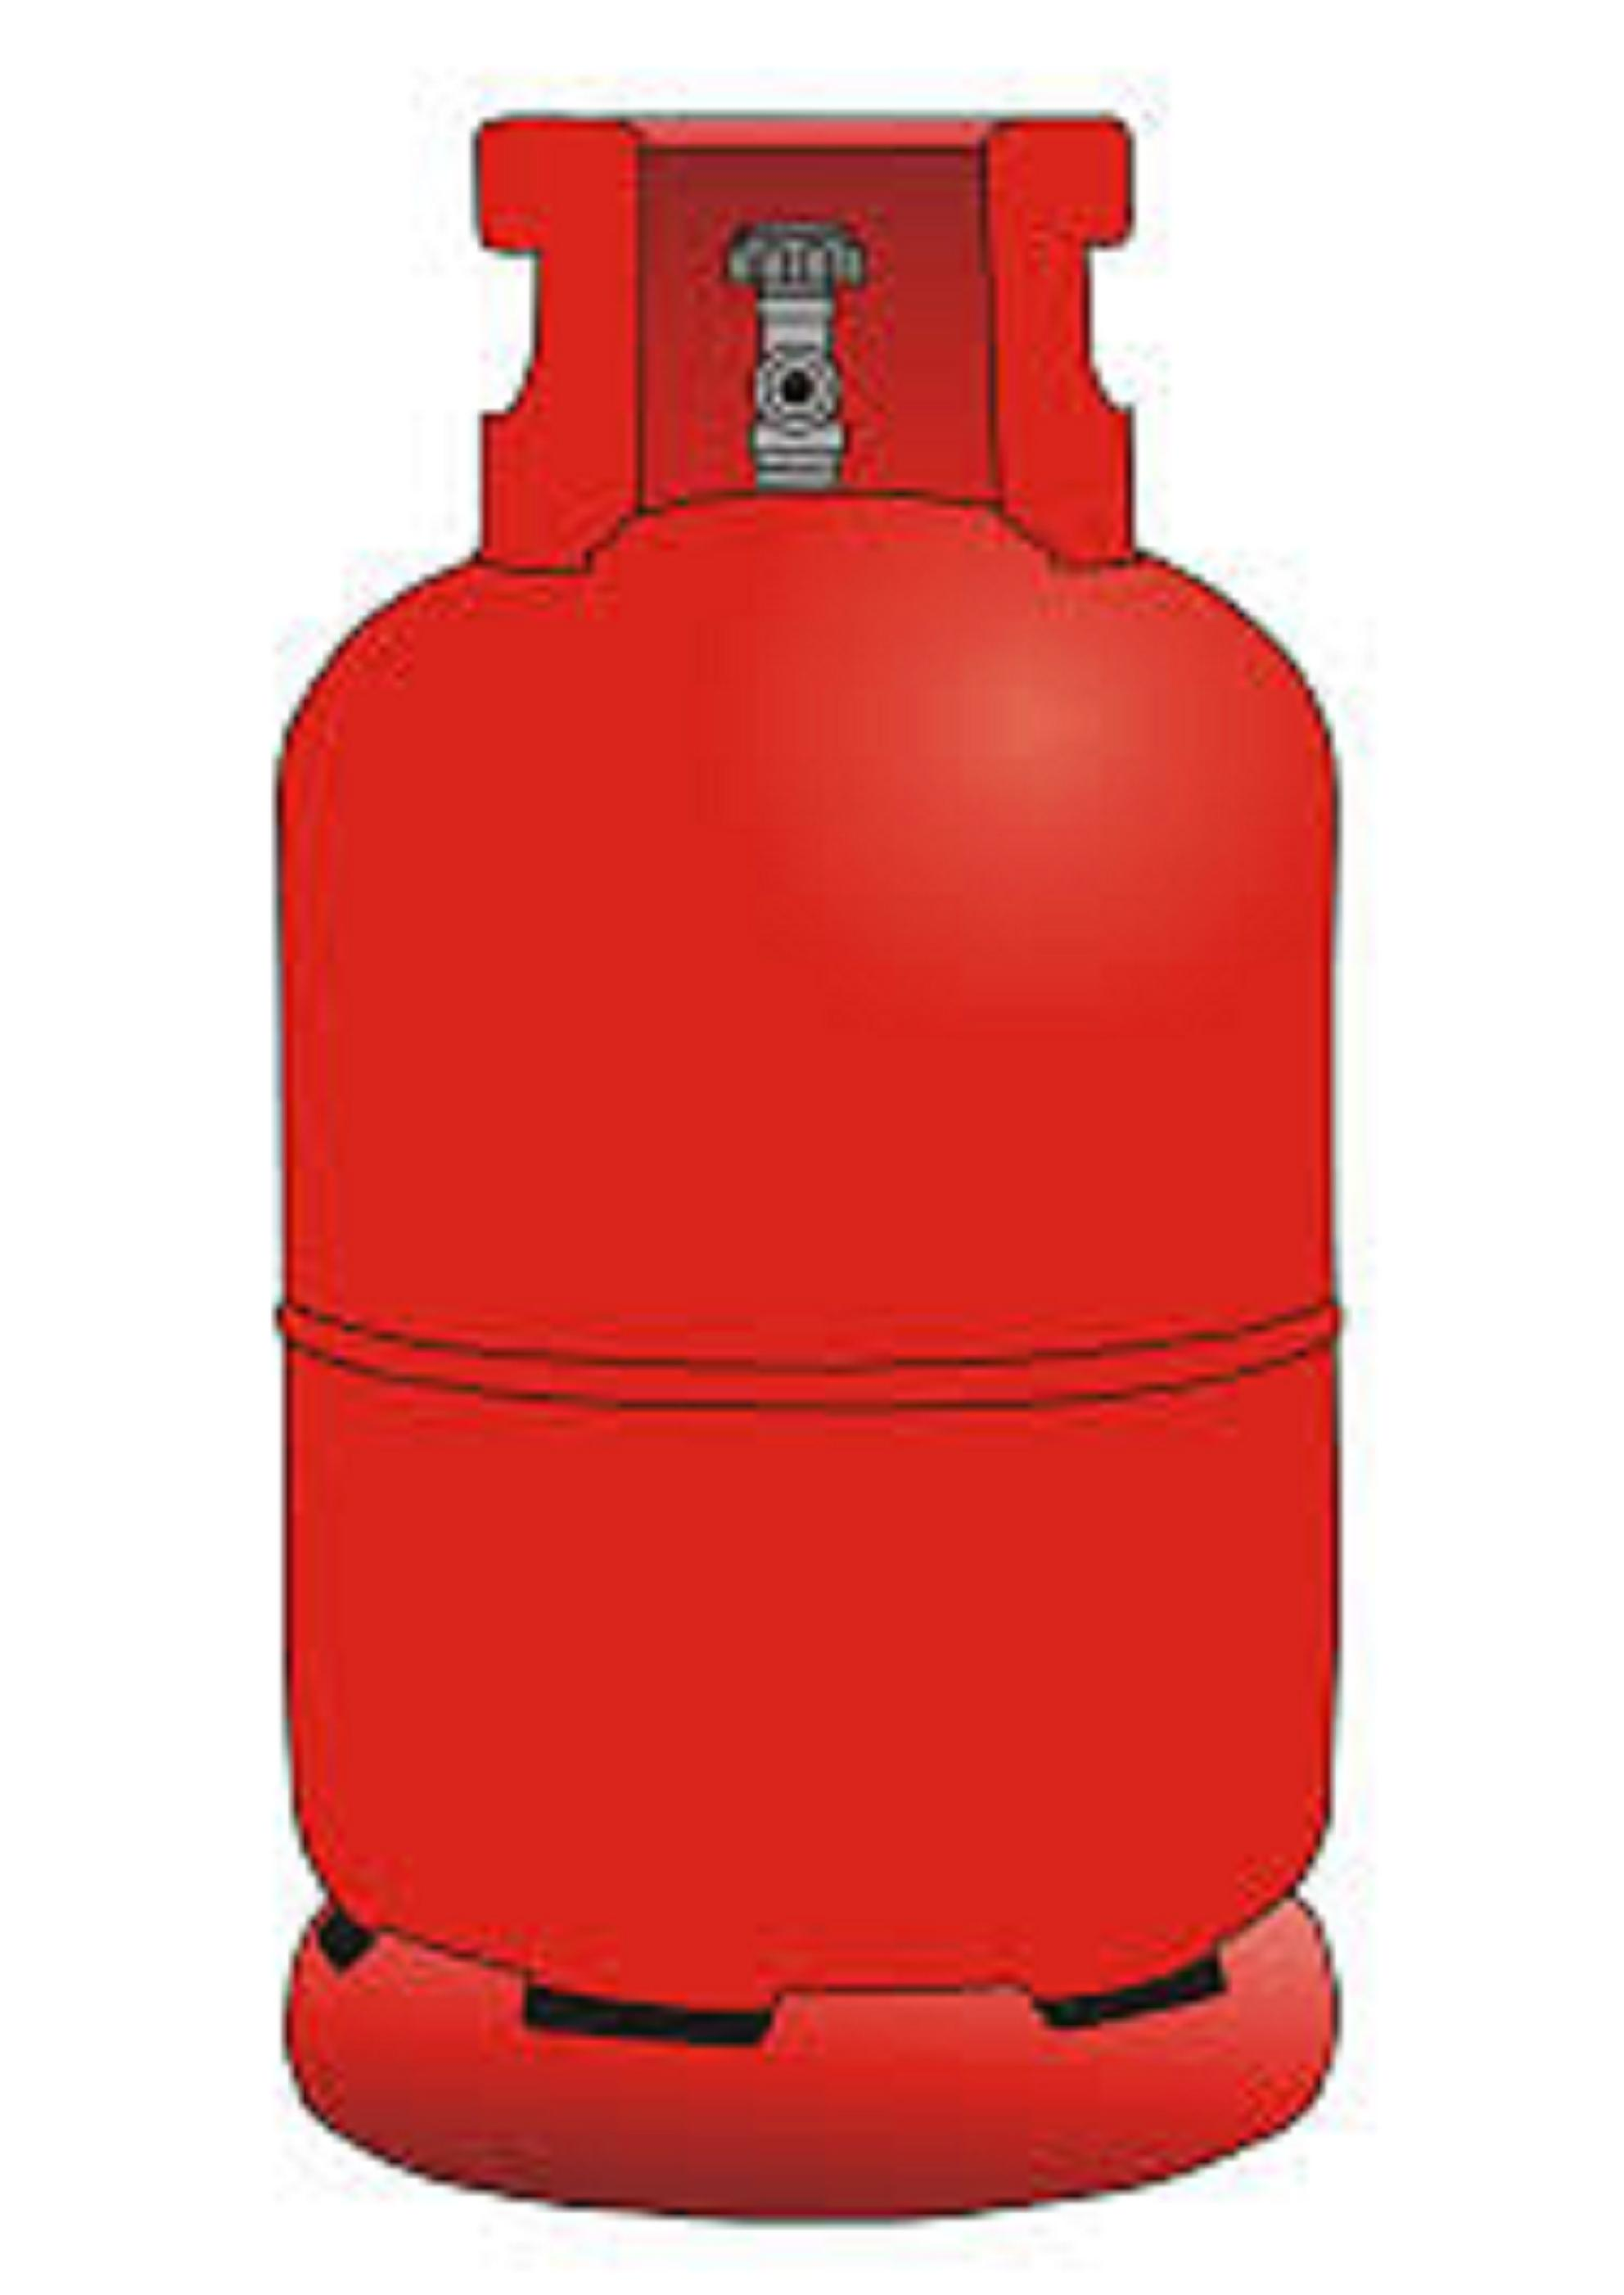 Cooking Gas Cylinder Clipart.